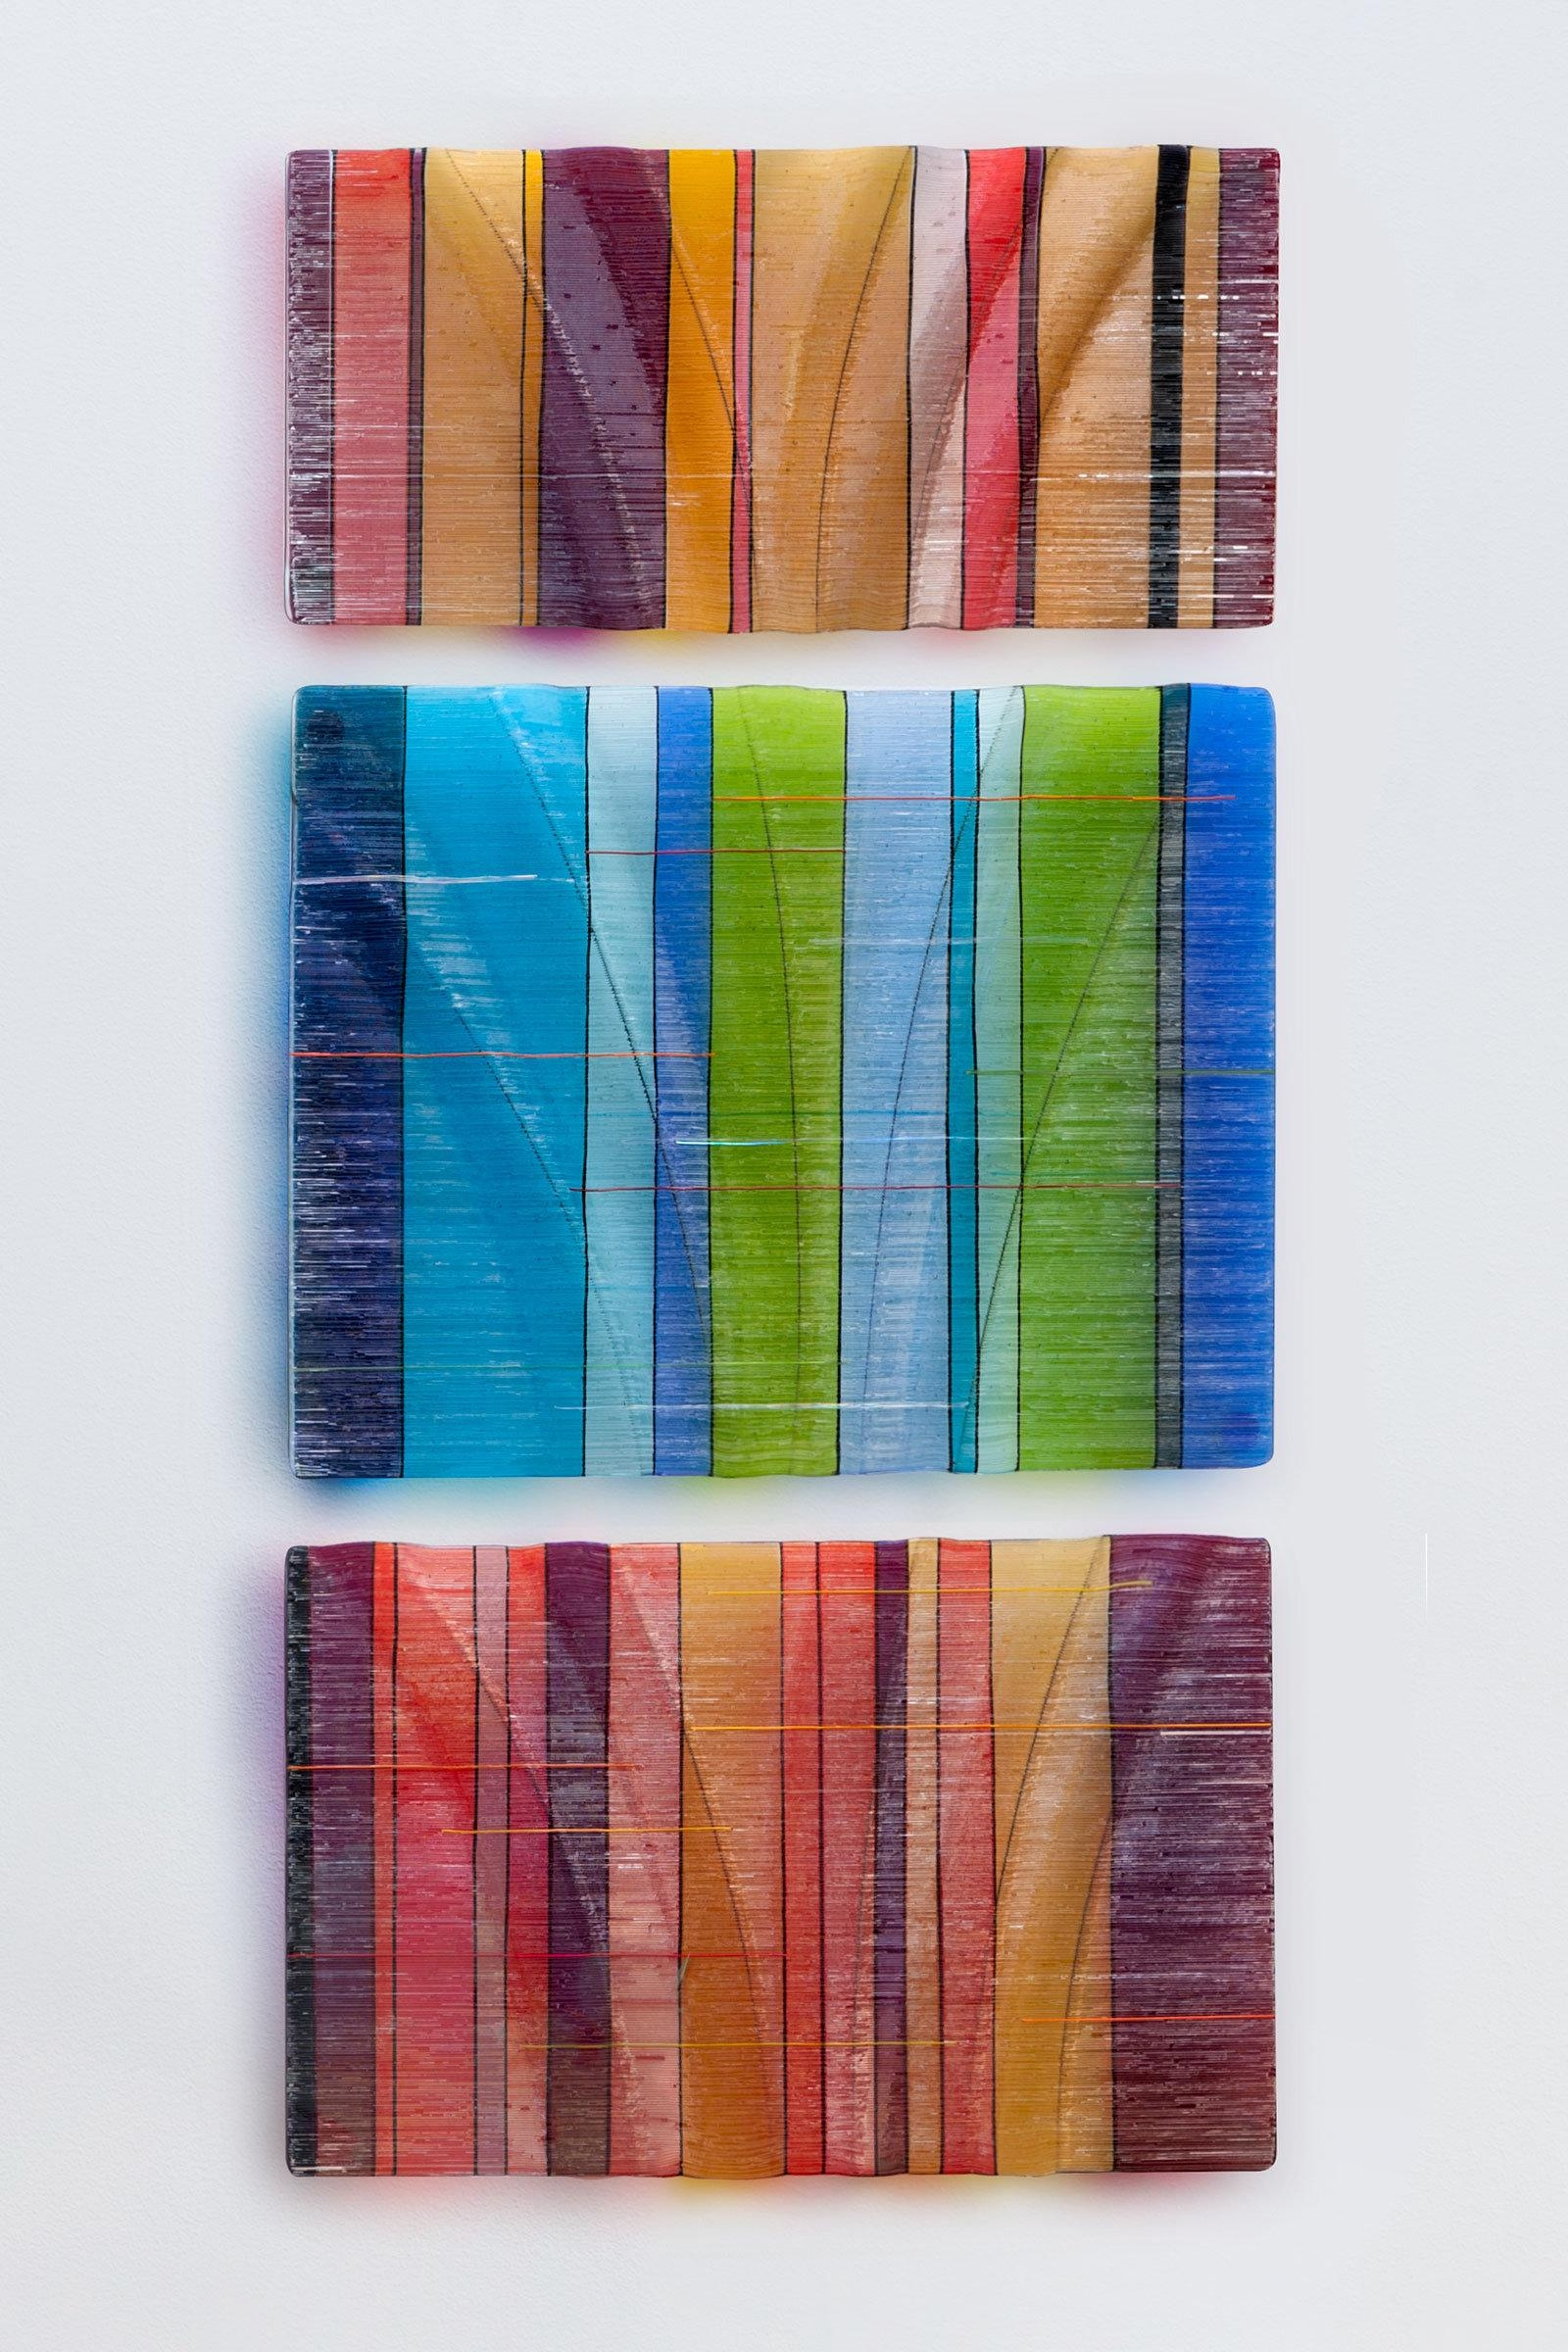 Glass Wall Artnorth American Artists | Artful Home In Fused Glass And Metal Wall Art (View 3 of 20)